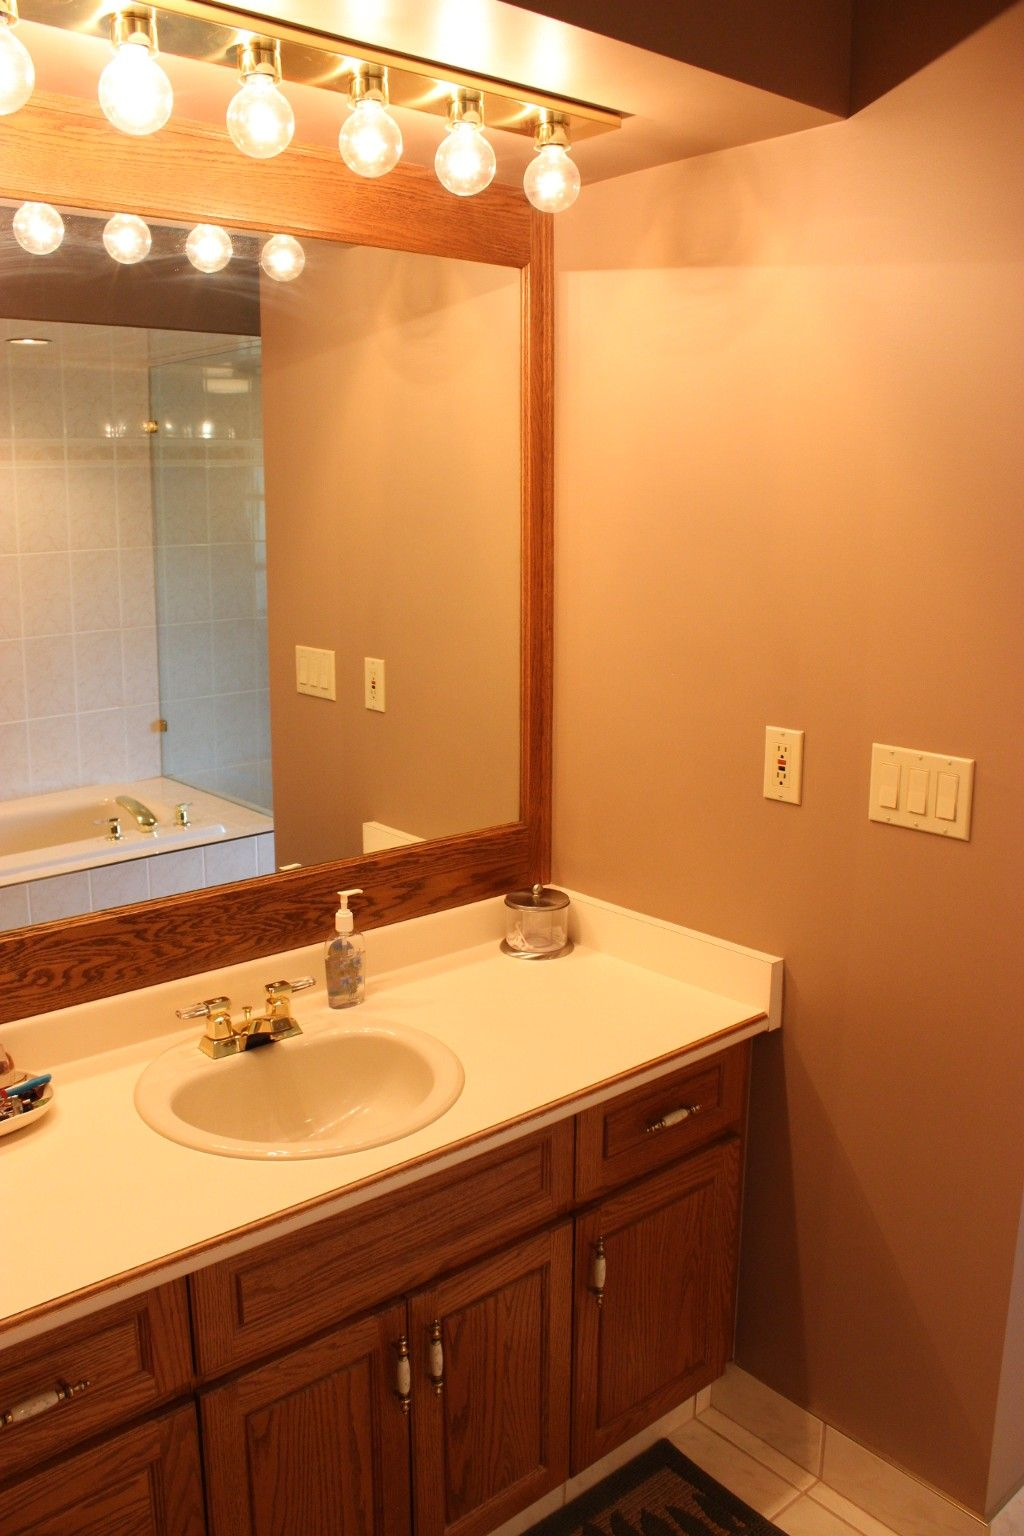 Photo 13: Photos: 3572 Navatanee Drive in Kamloops: Campbell Creek/Del Oro House for sale : MLS®# 125403